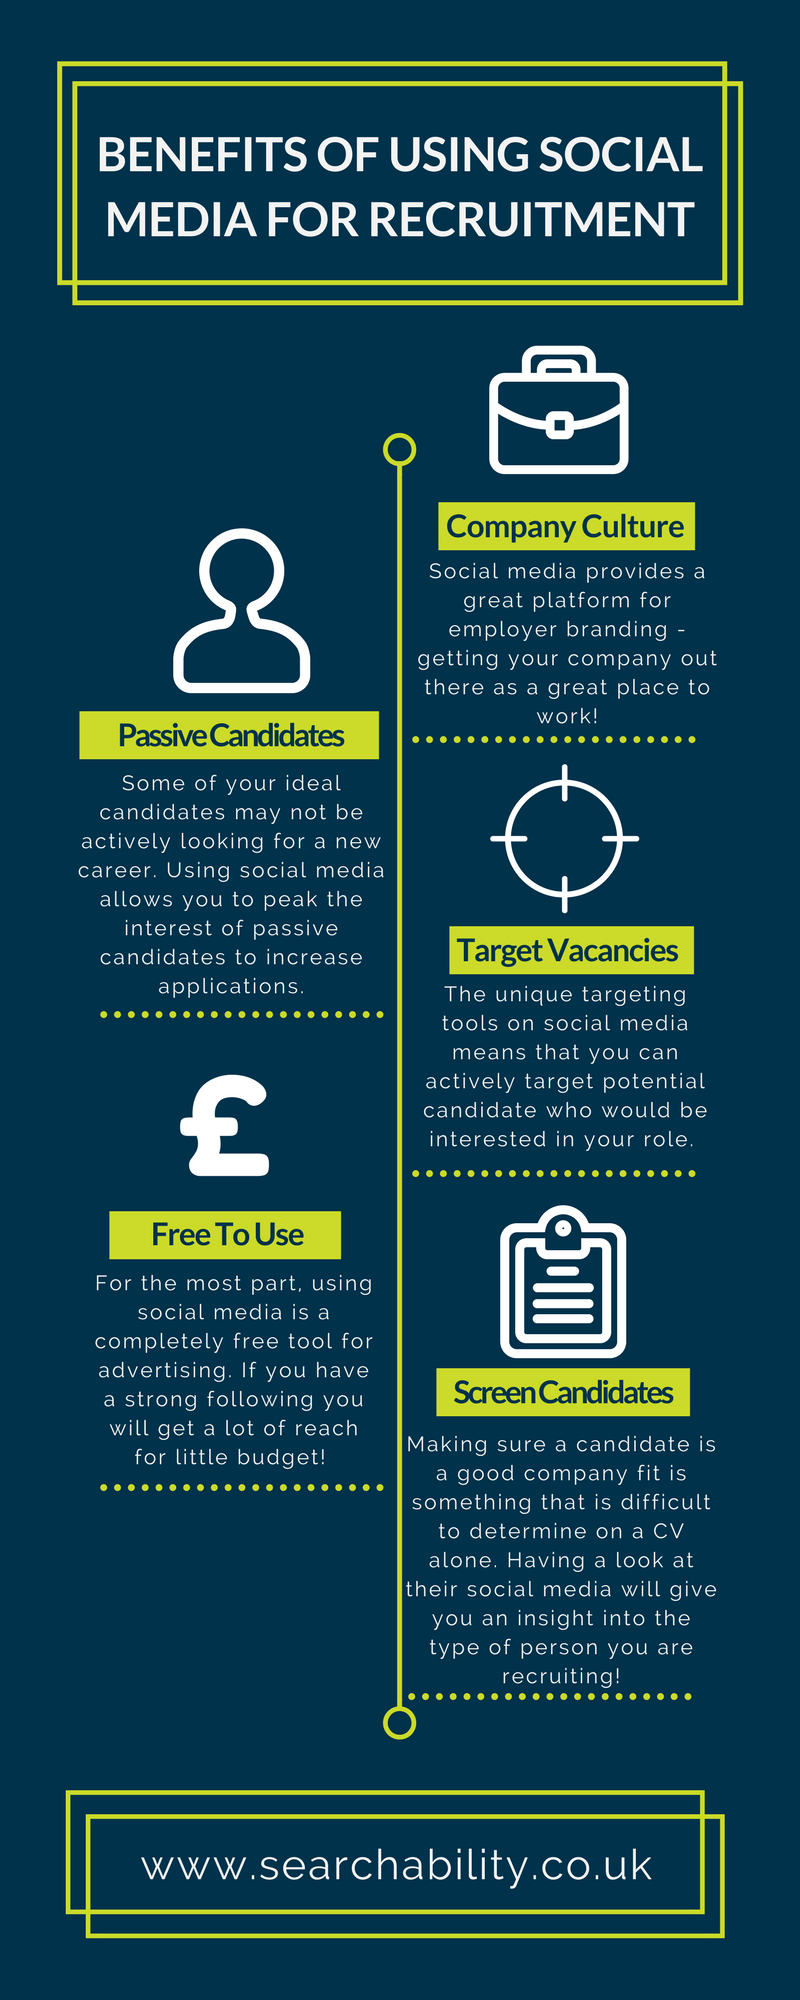 Using social media for recruitment